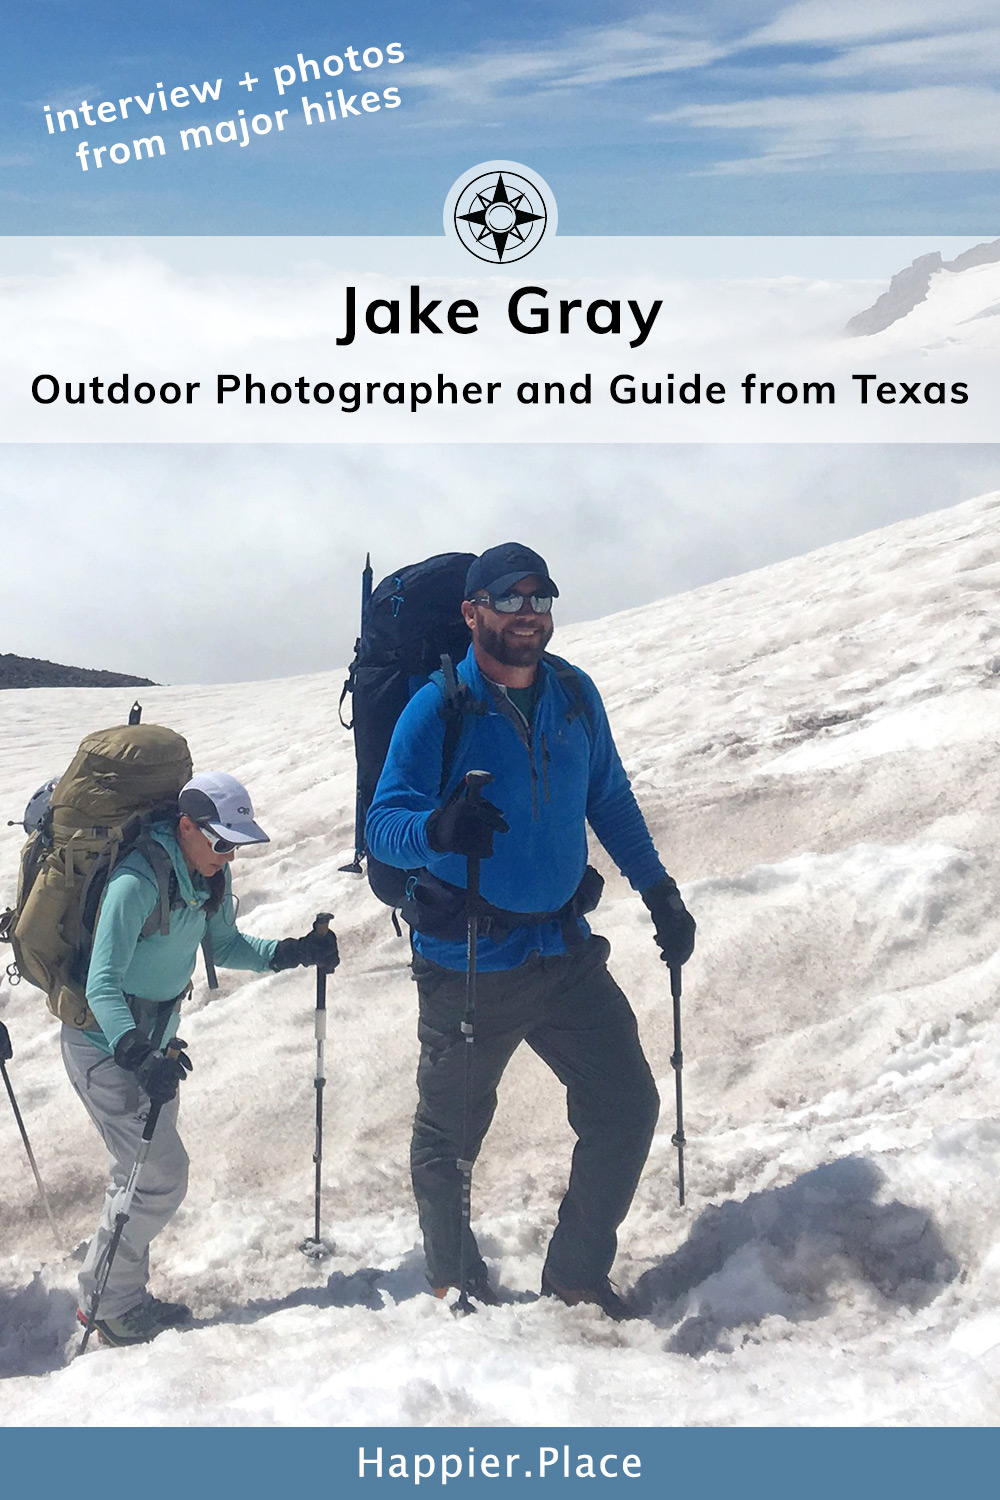 Jake Gray: Outdoor Photographer and Hiking Guide (Austin, Texas)